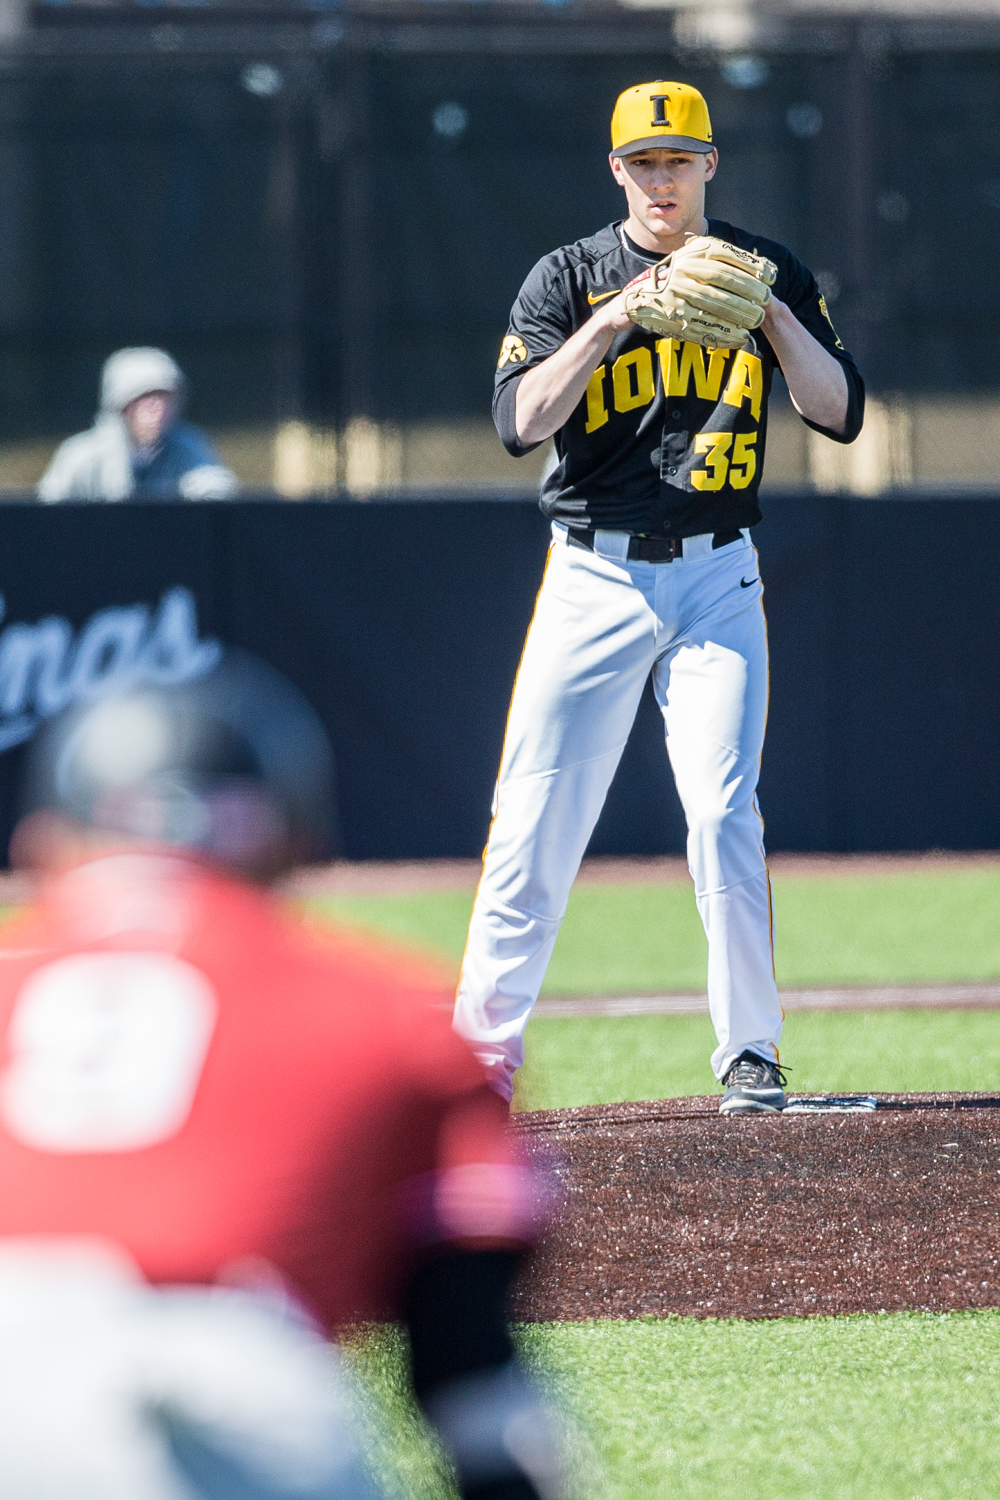 Iowa+pitcher+Cam+Baumann+eyes+down+first+base+during+the+first+game+of+a+baseball+doubleheader+between+Iowa+and+Cal-State+Northridge+at+Duane+Banks+Field+on+Sunday%2C+March+17%2C+2019.+The+Hawkeyes+defeated+the+Matadors%2C+5-4.